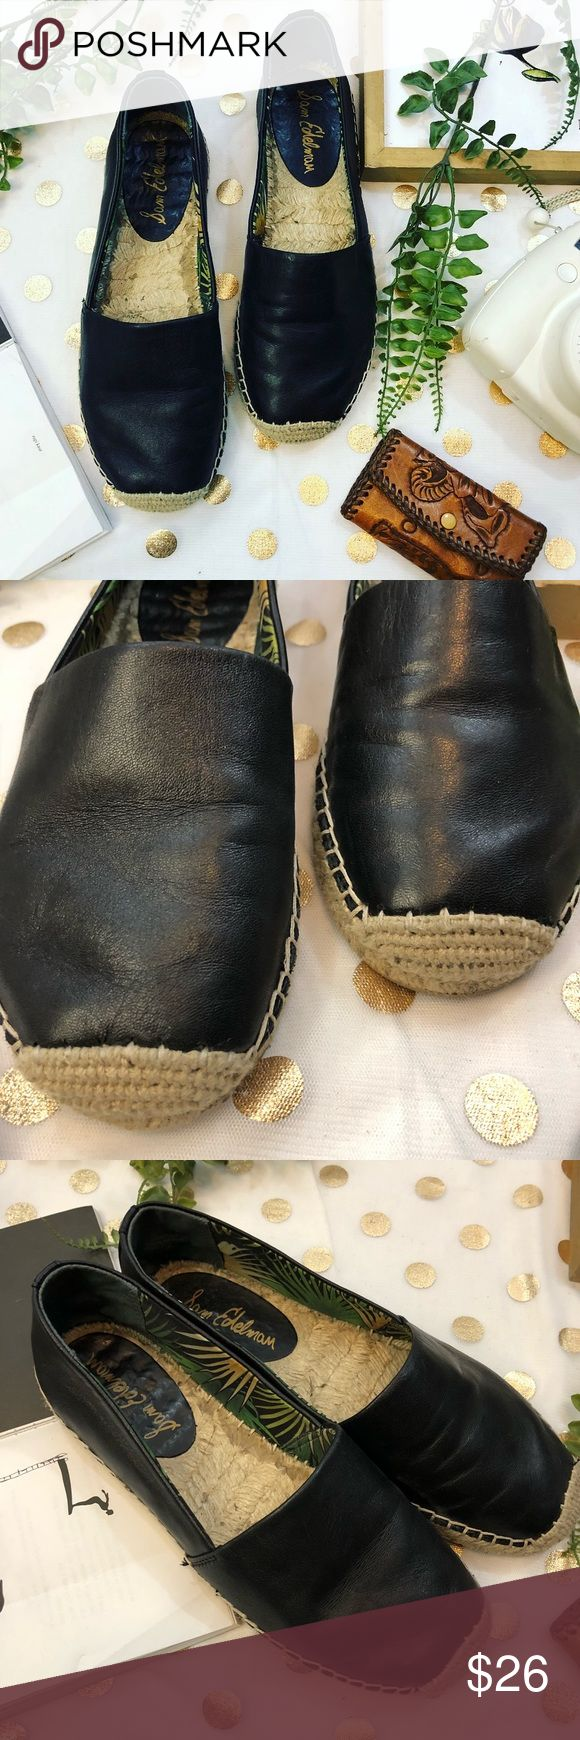 Sam Edelman black leather espadrilles size 7 Sam Edelman black leather espadrilles size 7  In good used condition  Perfect for spring right around the corner !  Comfortable flat shoe  Perfect with your favorite jeans  Any ? Please ask  I would love to accept your offer ✨ Sam Edelman Shoes Espadrilles